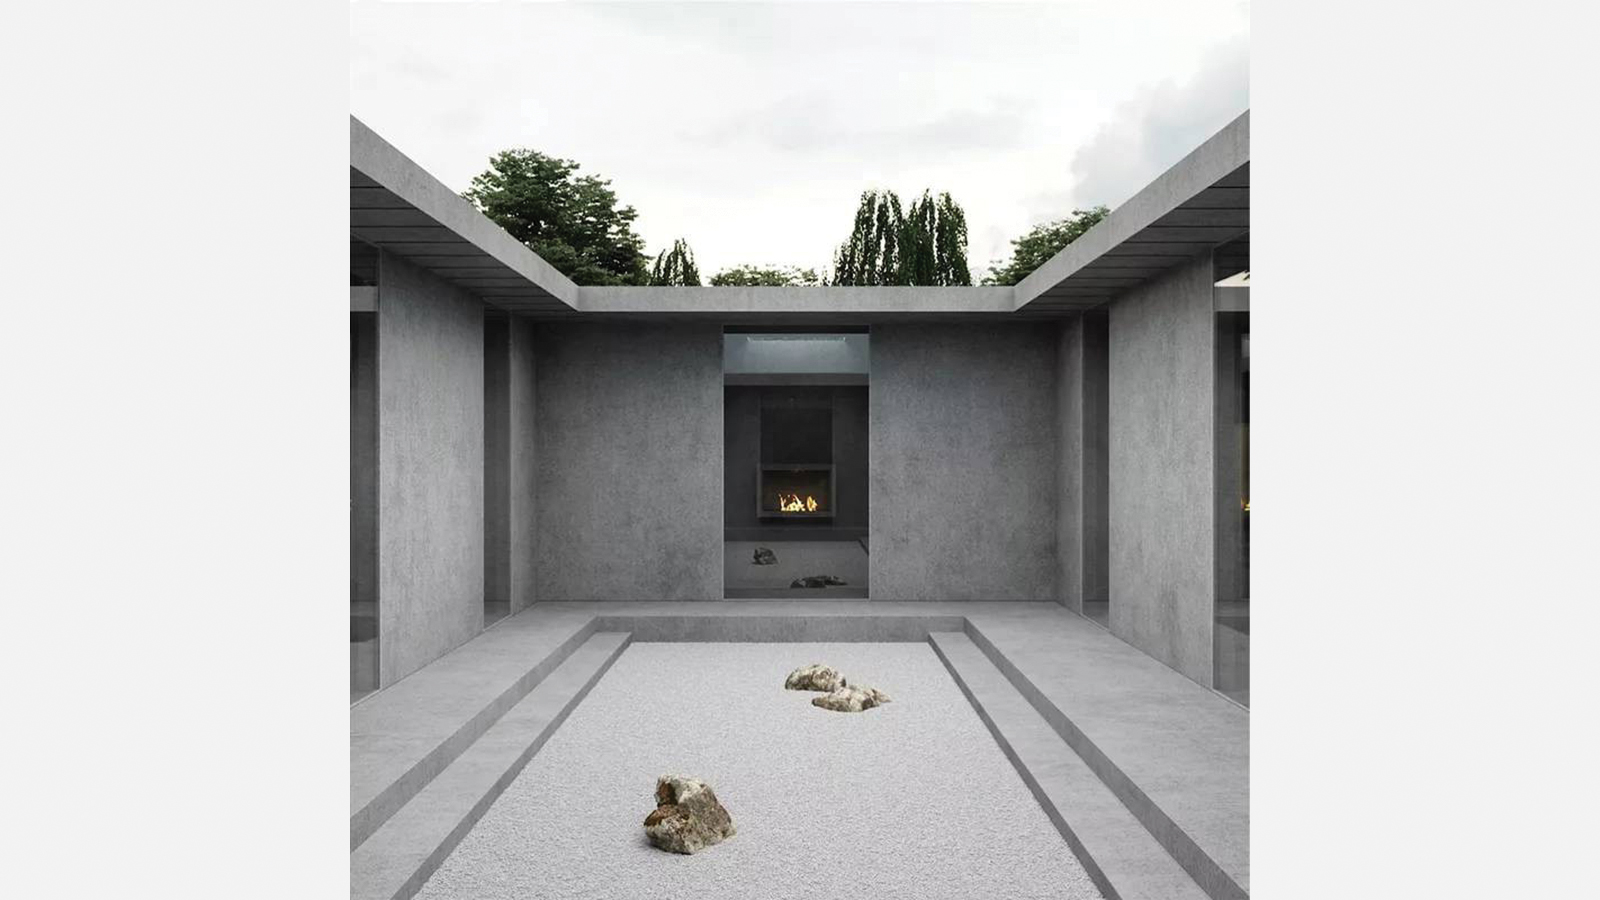 'Yeezy home' - a low-cost housing project by Kanye West